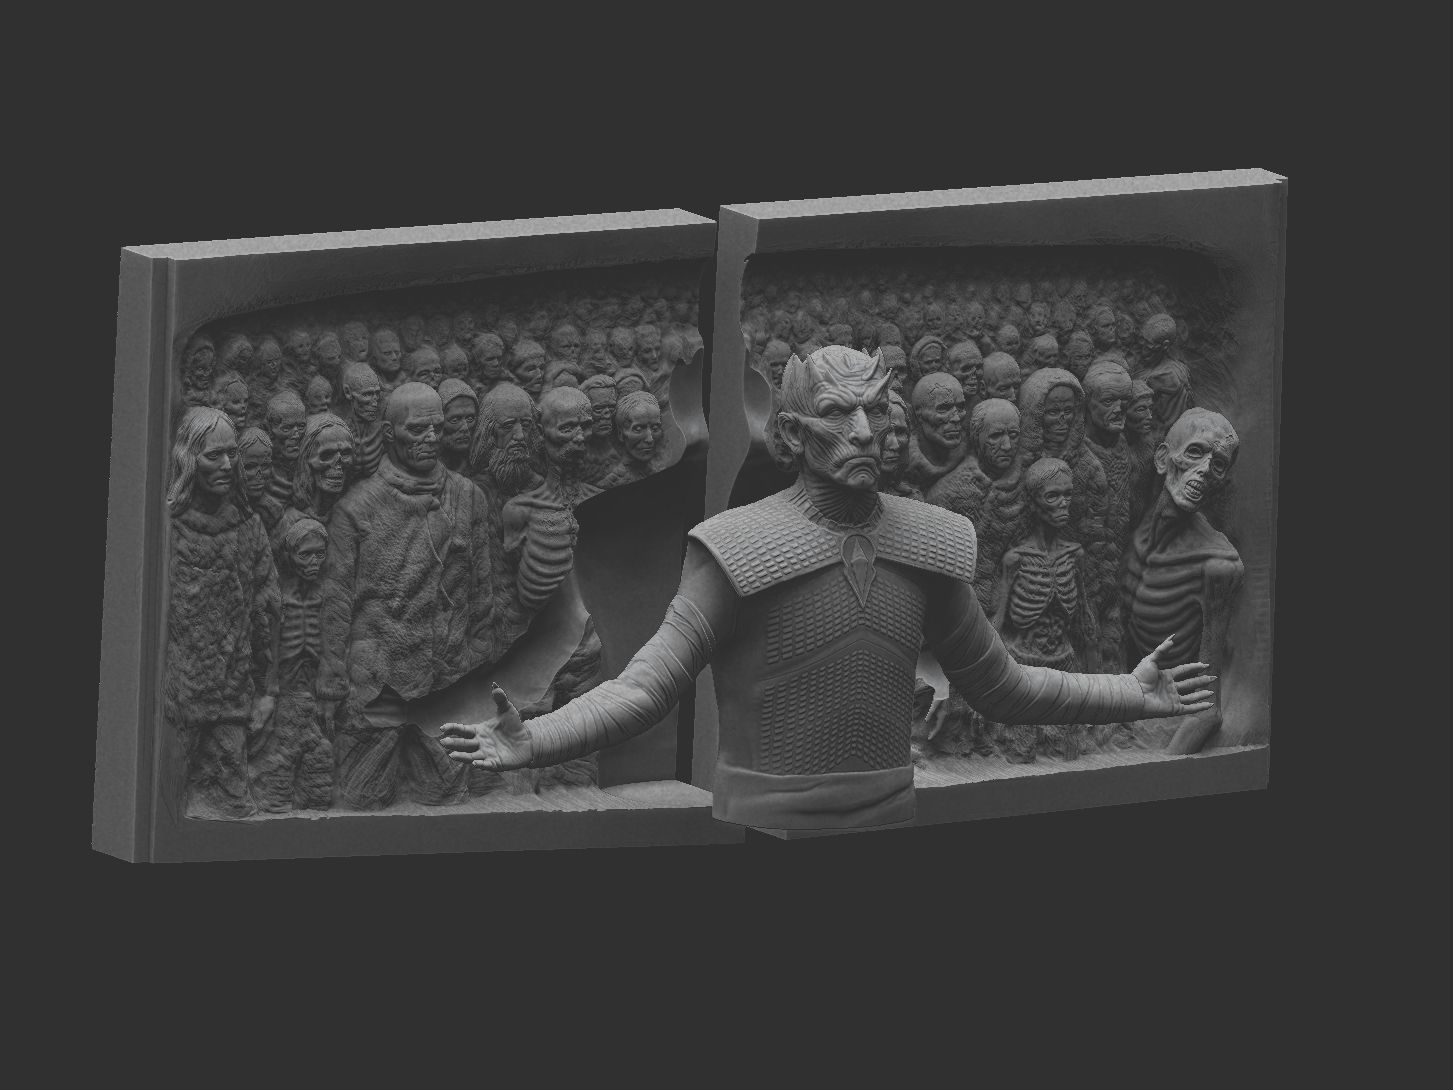 ZBrush Document.jpg Download STL file Game of Thrones - Night King - Hardhome Relief • 3D printing model, brkhy